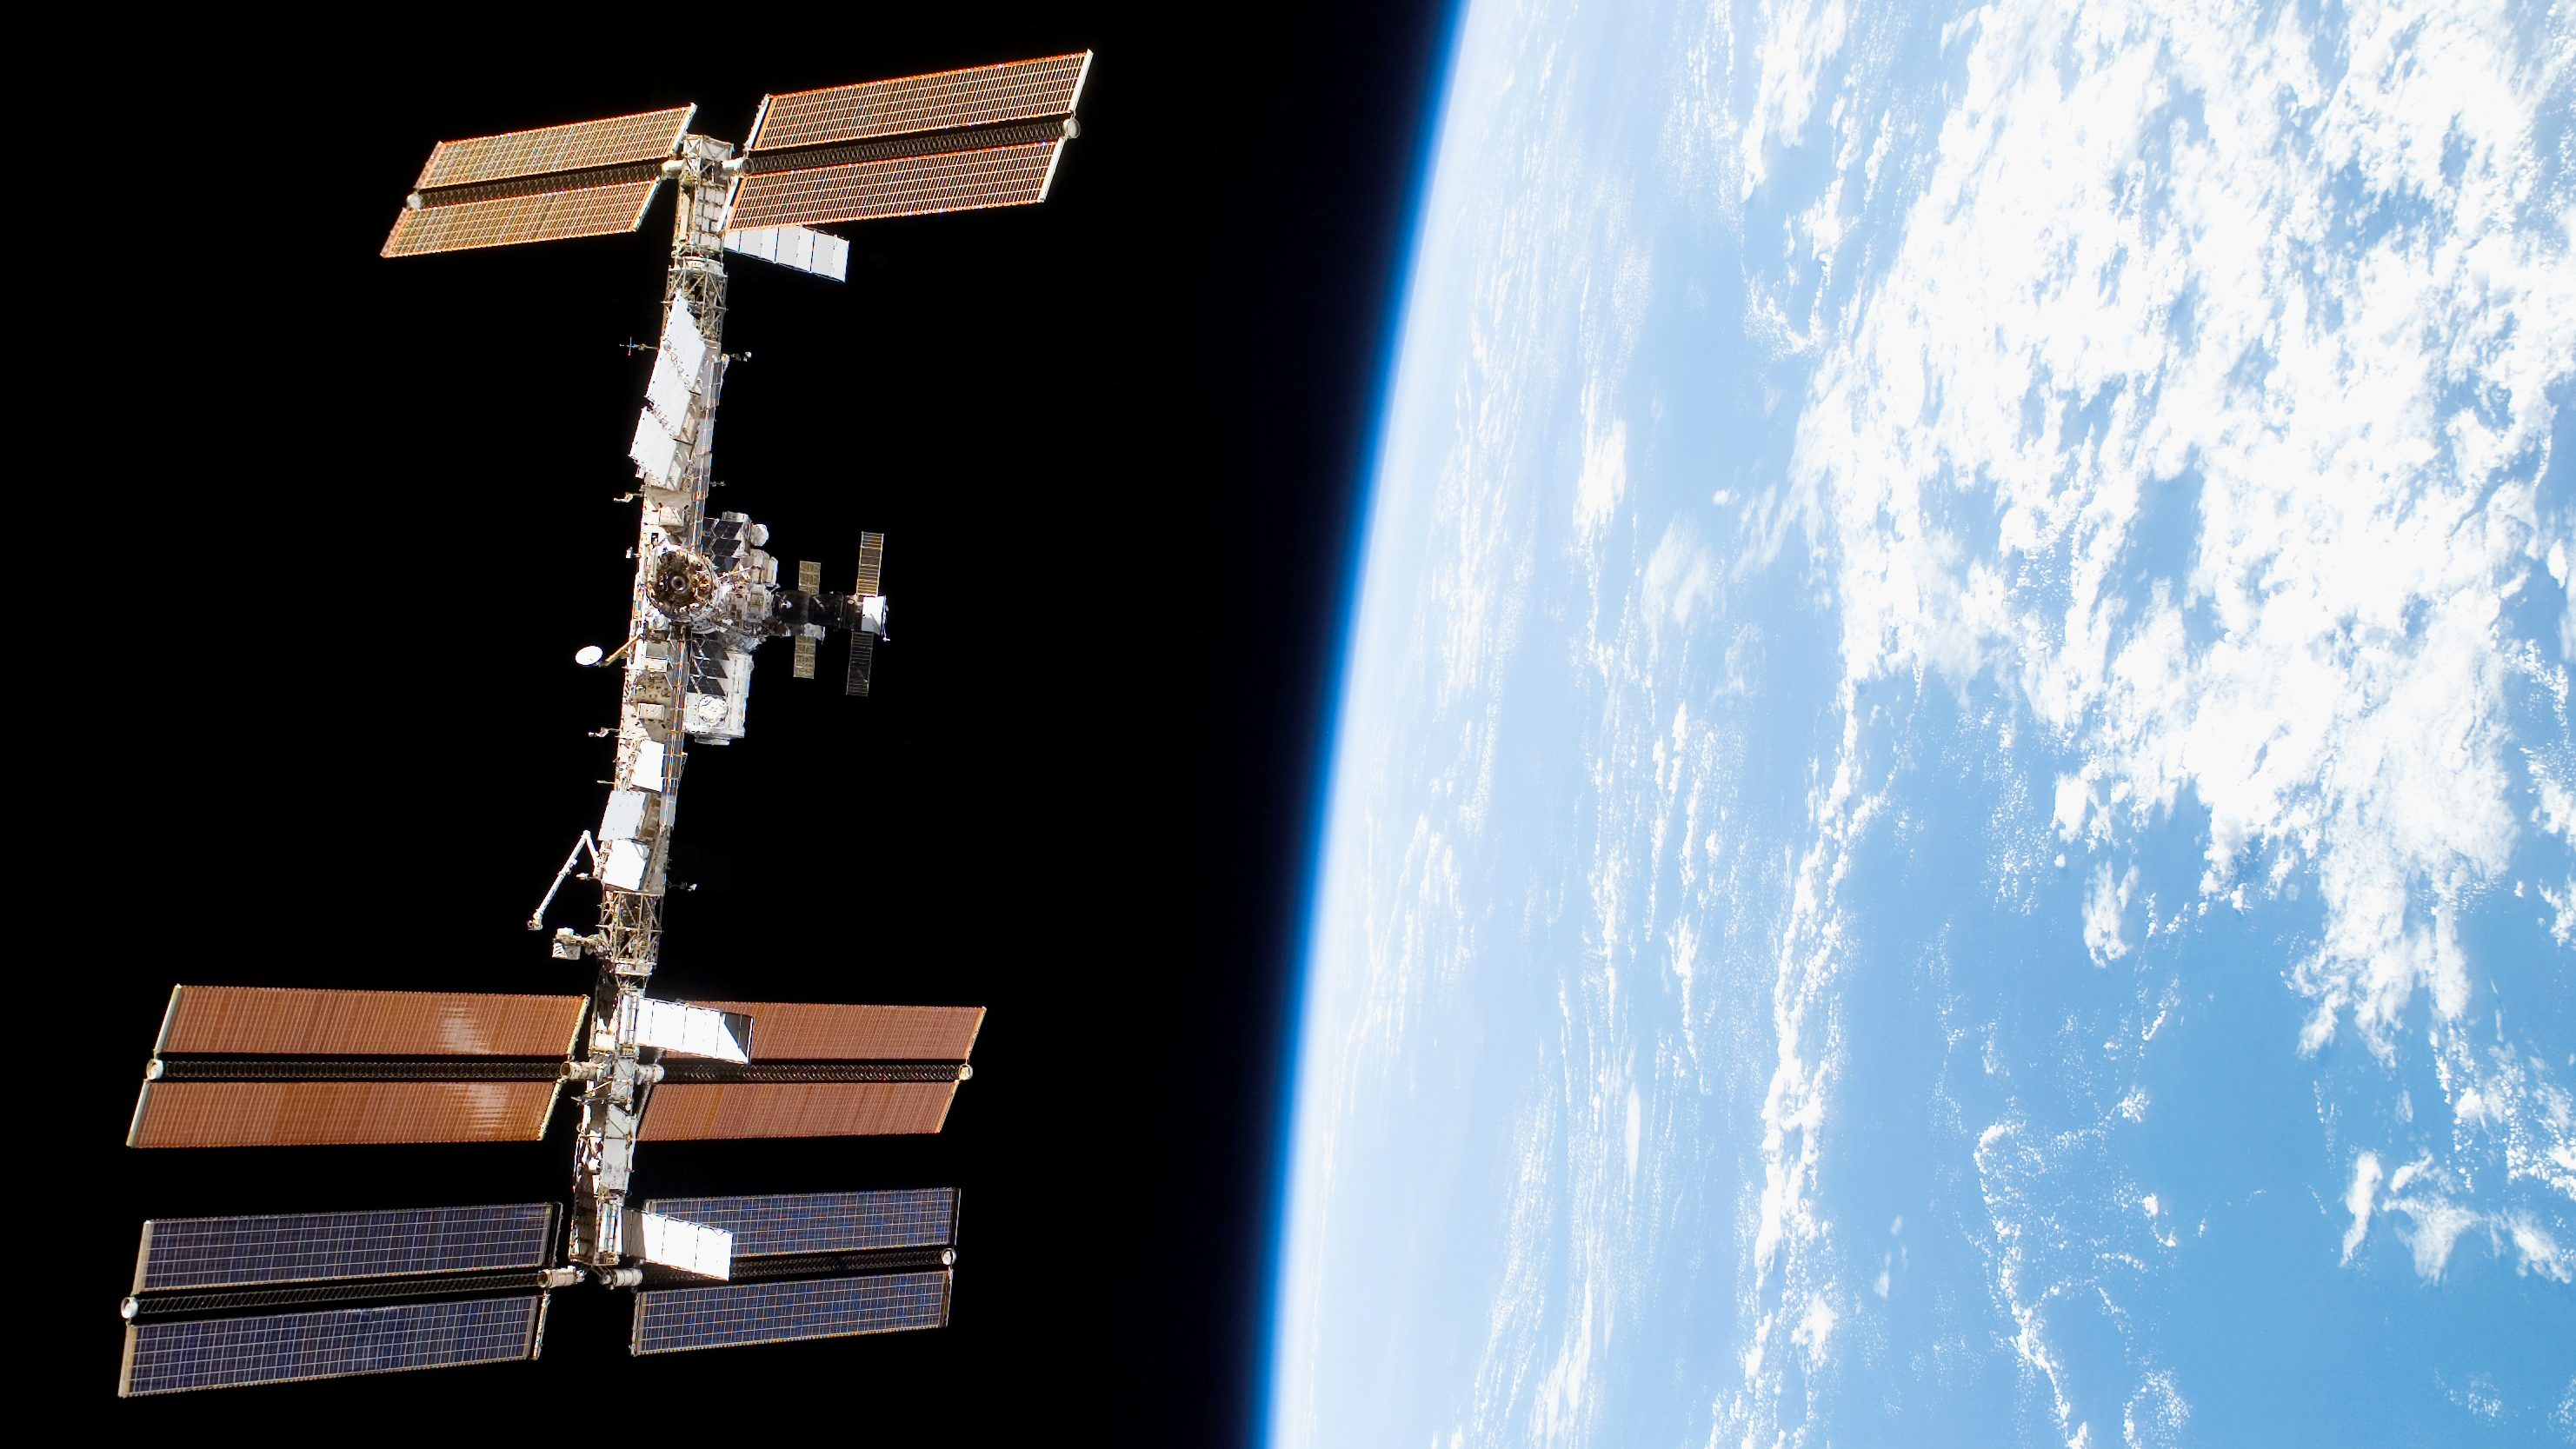 INTERNATIONAL SPACE STATION (ISS) POST STS-120 MISSION